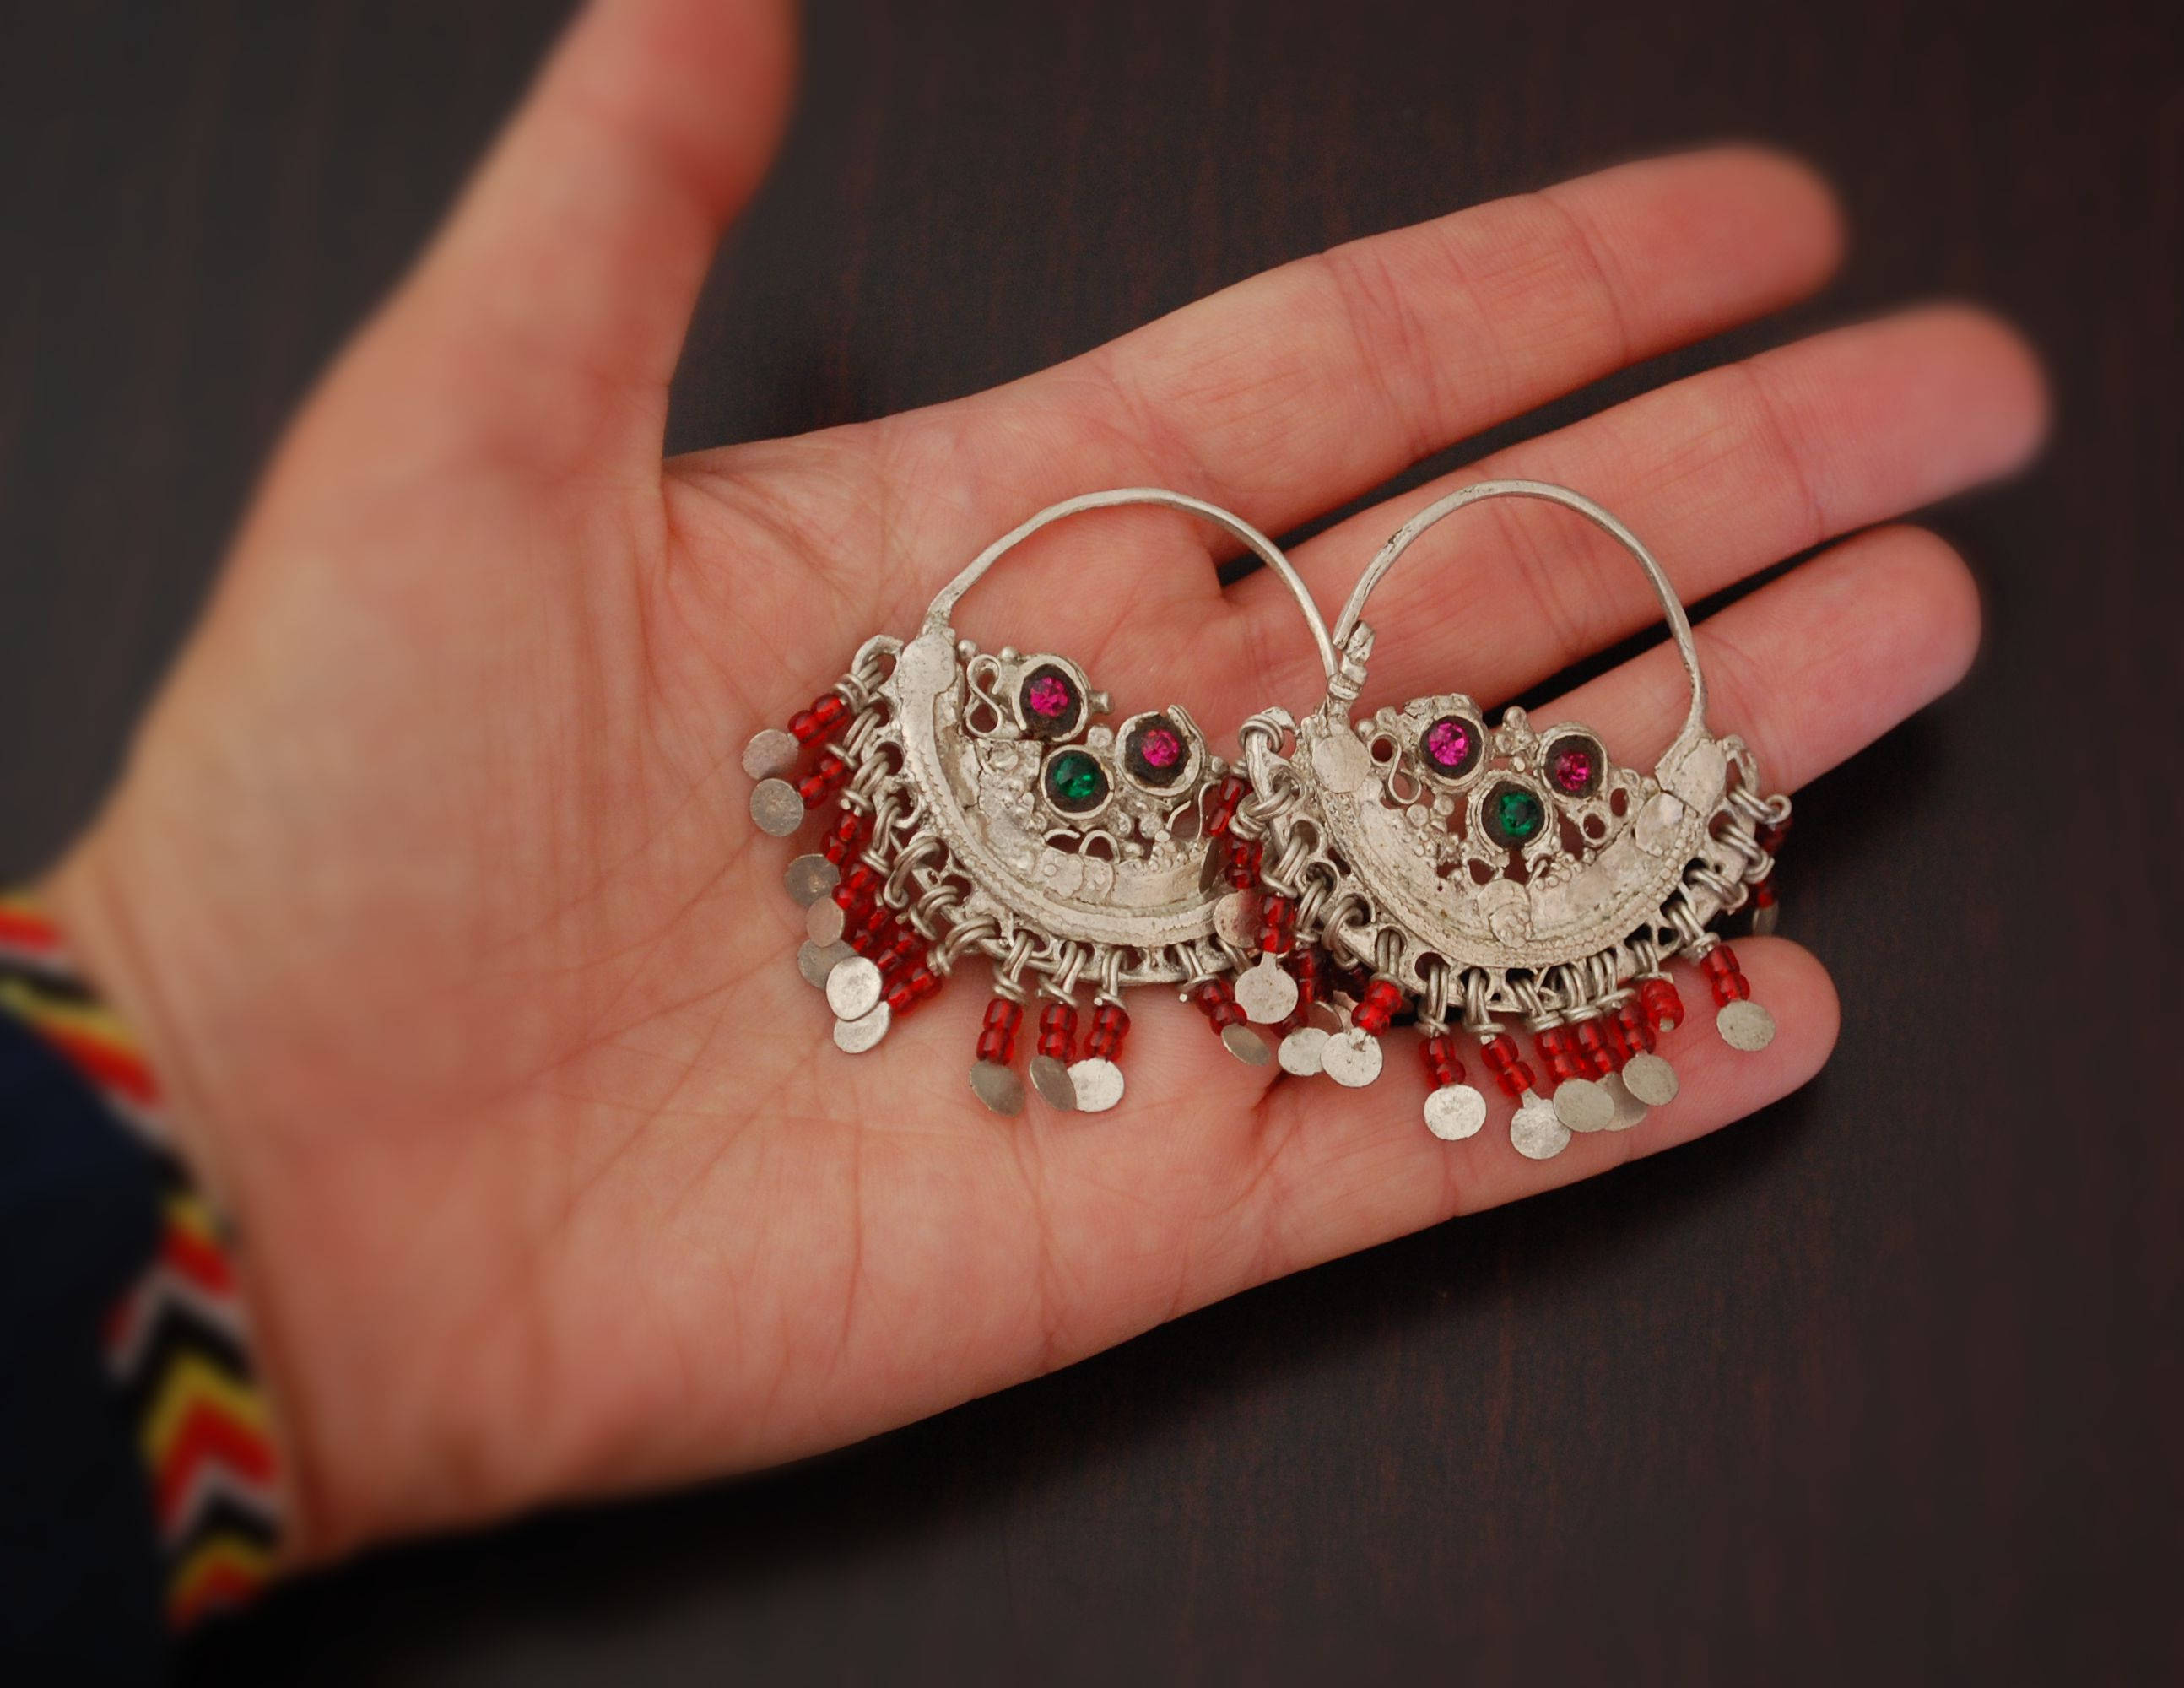 Antique Afghan Tribal Hoop Earrings - Tribal Hoop Earrings - Afghan Hoop Earrings - Ethnic Hoop Earrings